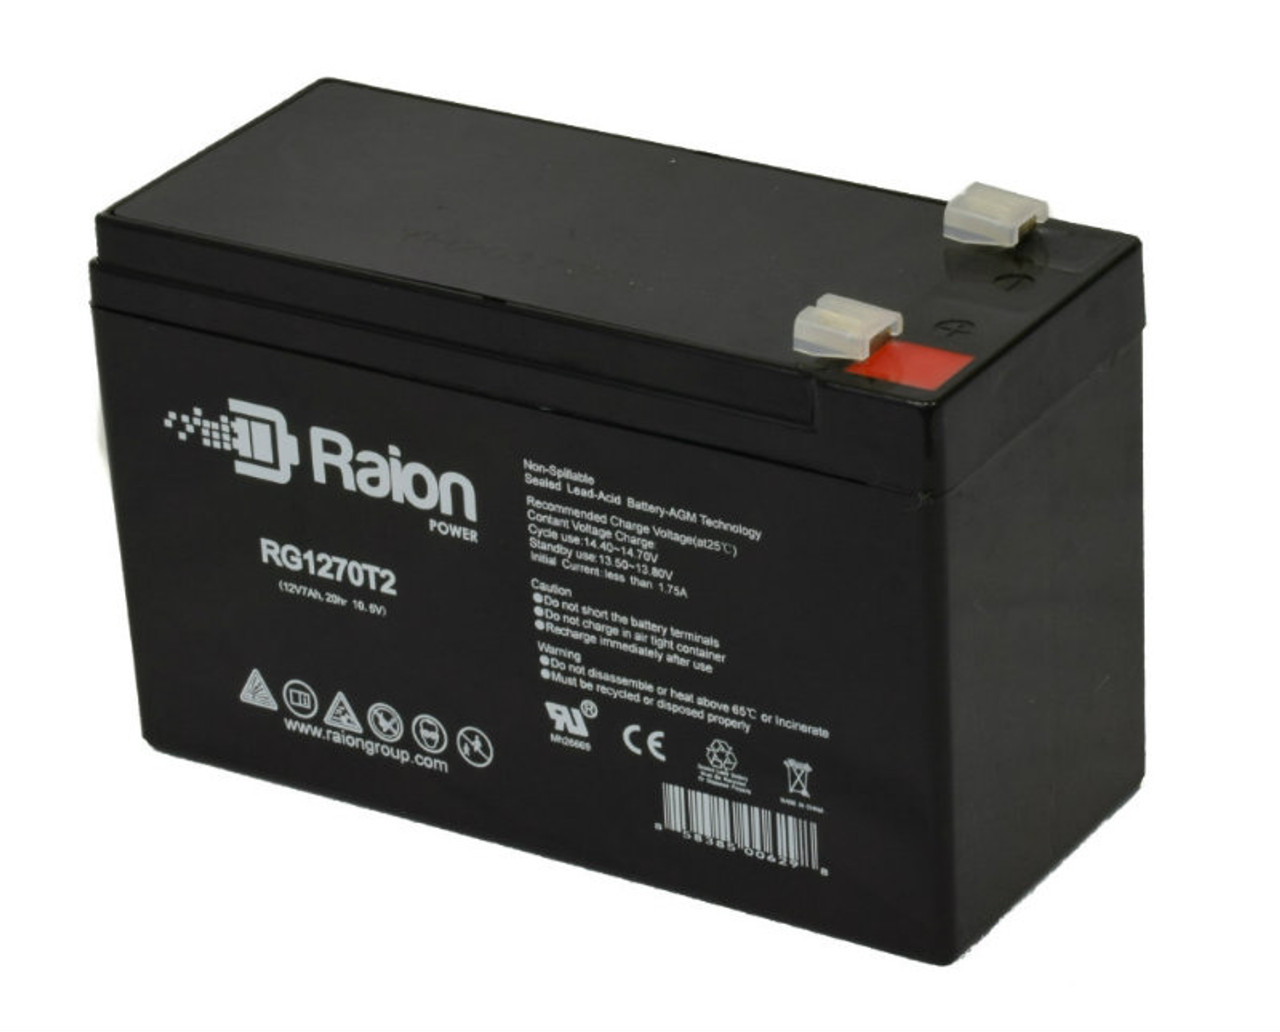 Raion Power RG1270T1 Replacement Battery for Leoch Battery LP12-7.5